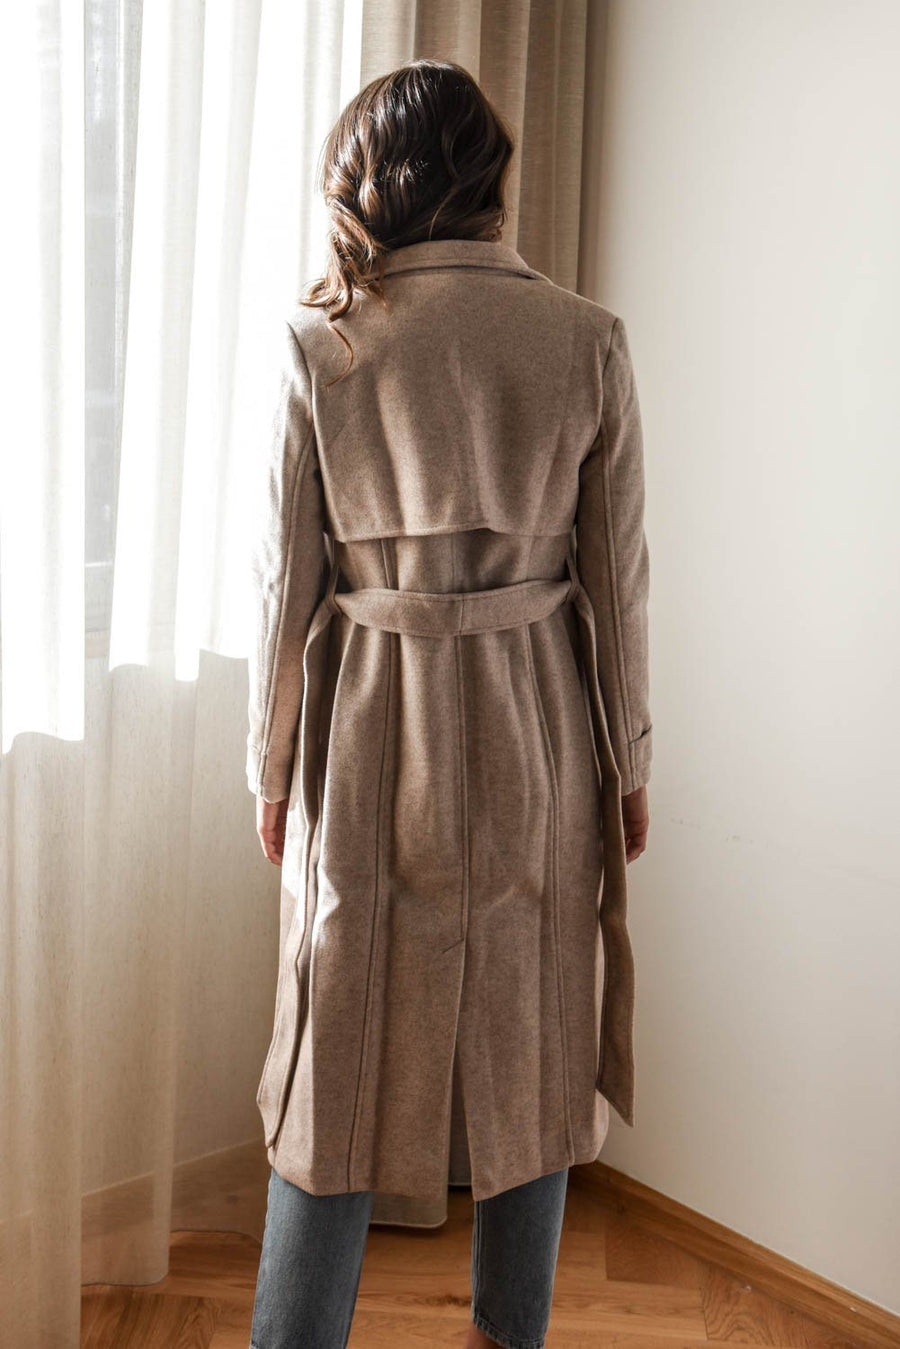 South Coat coat The Lust Label